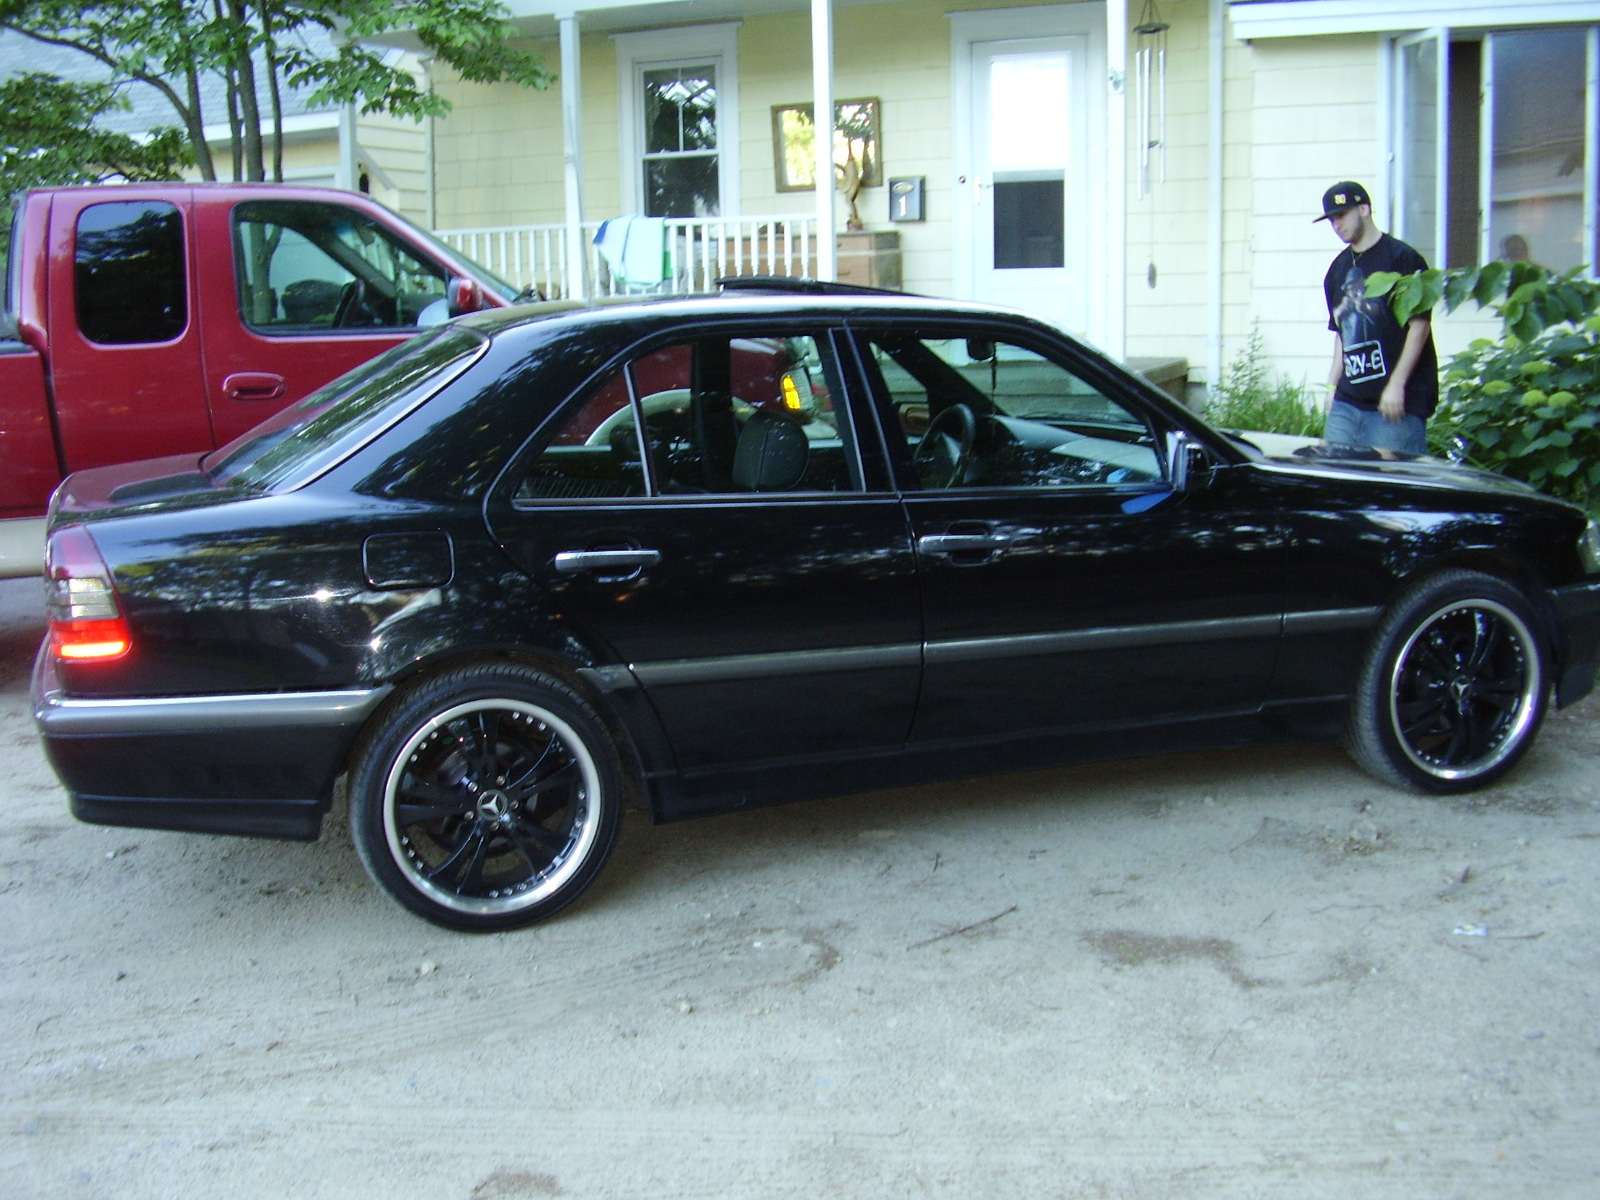 1998 mercedes benz c class other pictures cargurus for Mercedes benz c class 1998